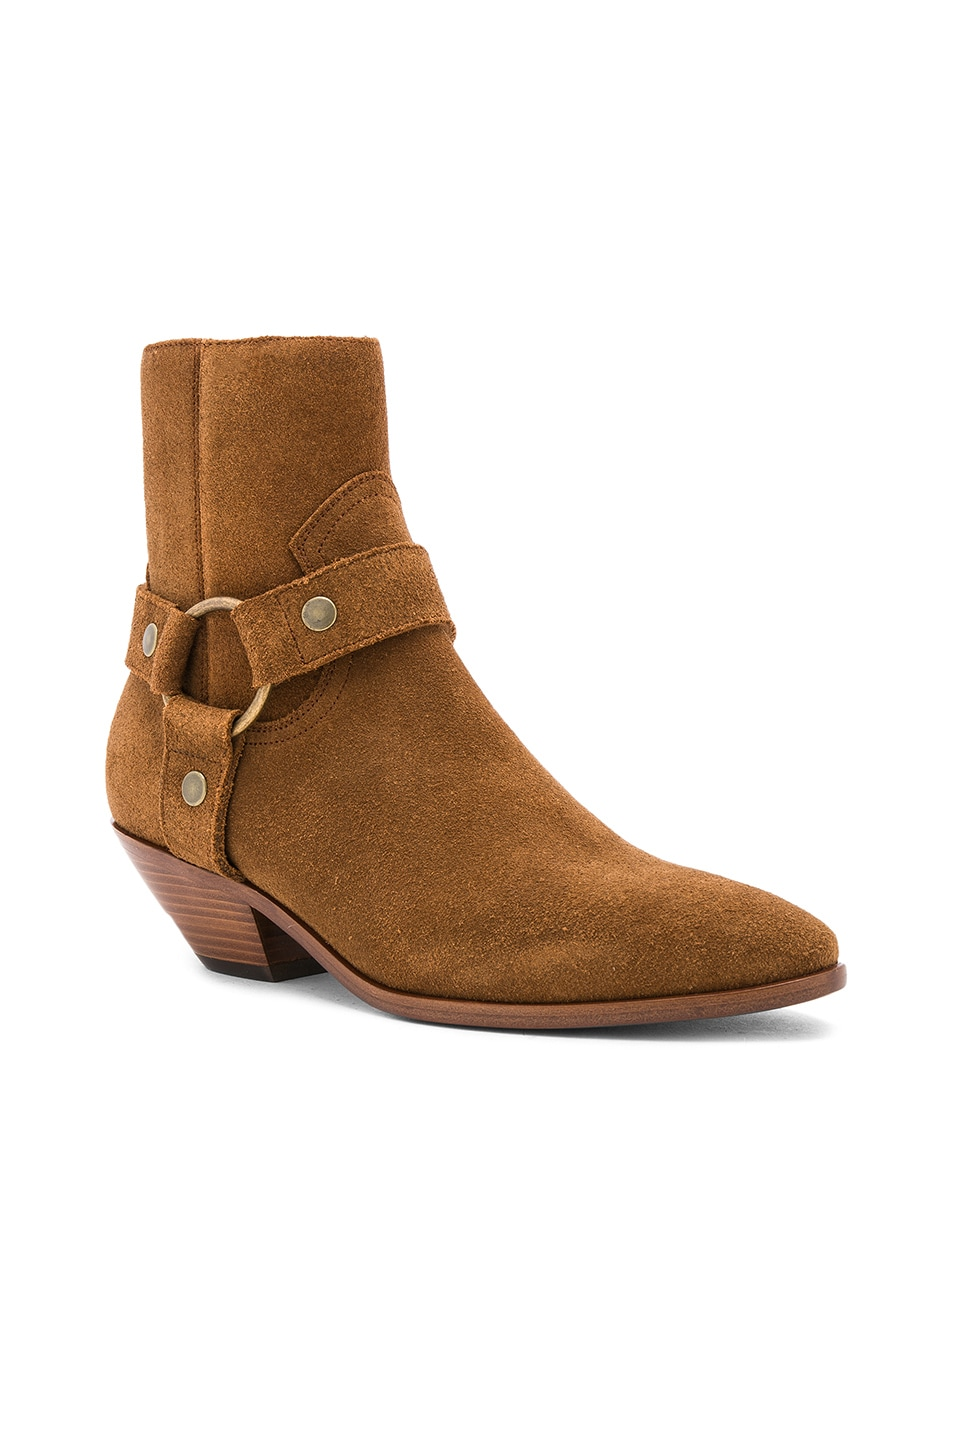 Image 2 of Saint Laurent Suede West Strap Ankle Boots in Hazelnut